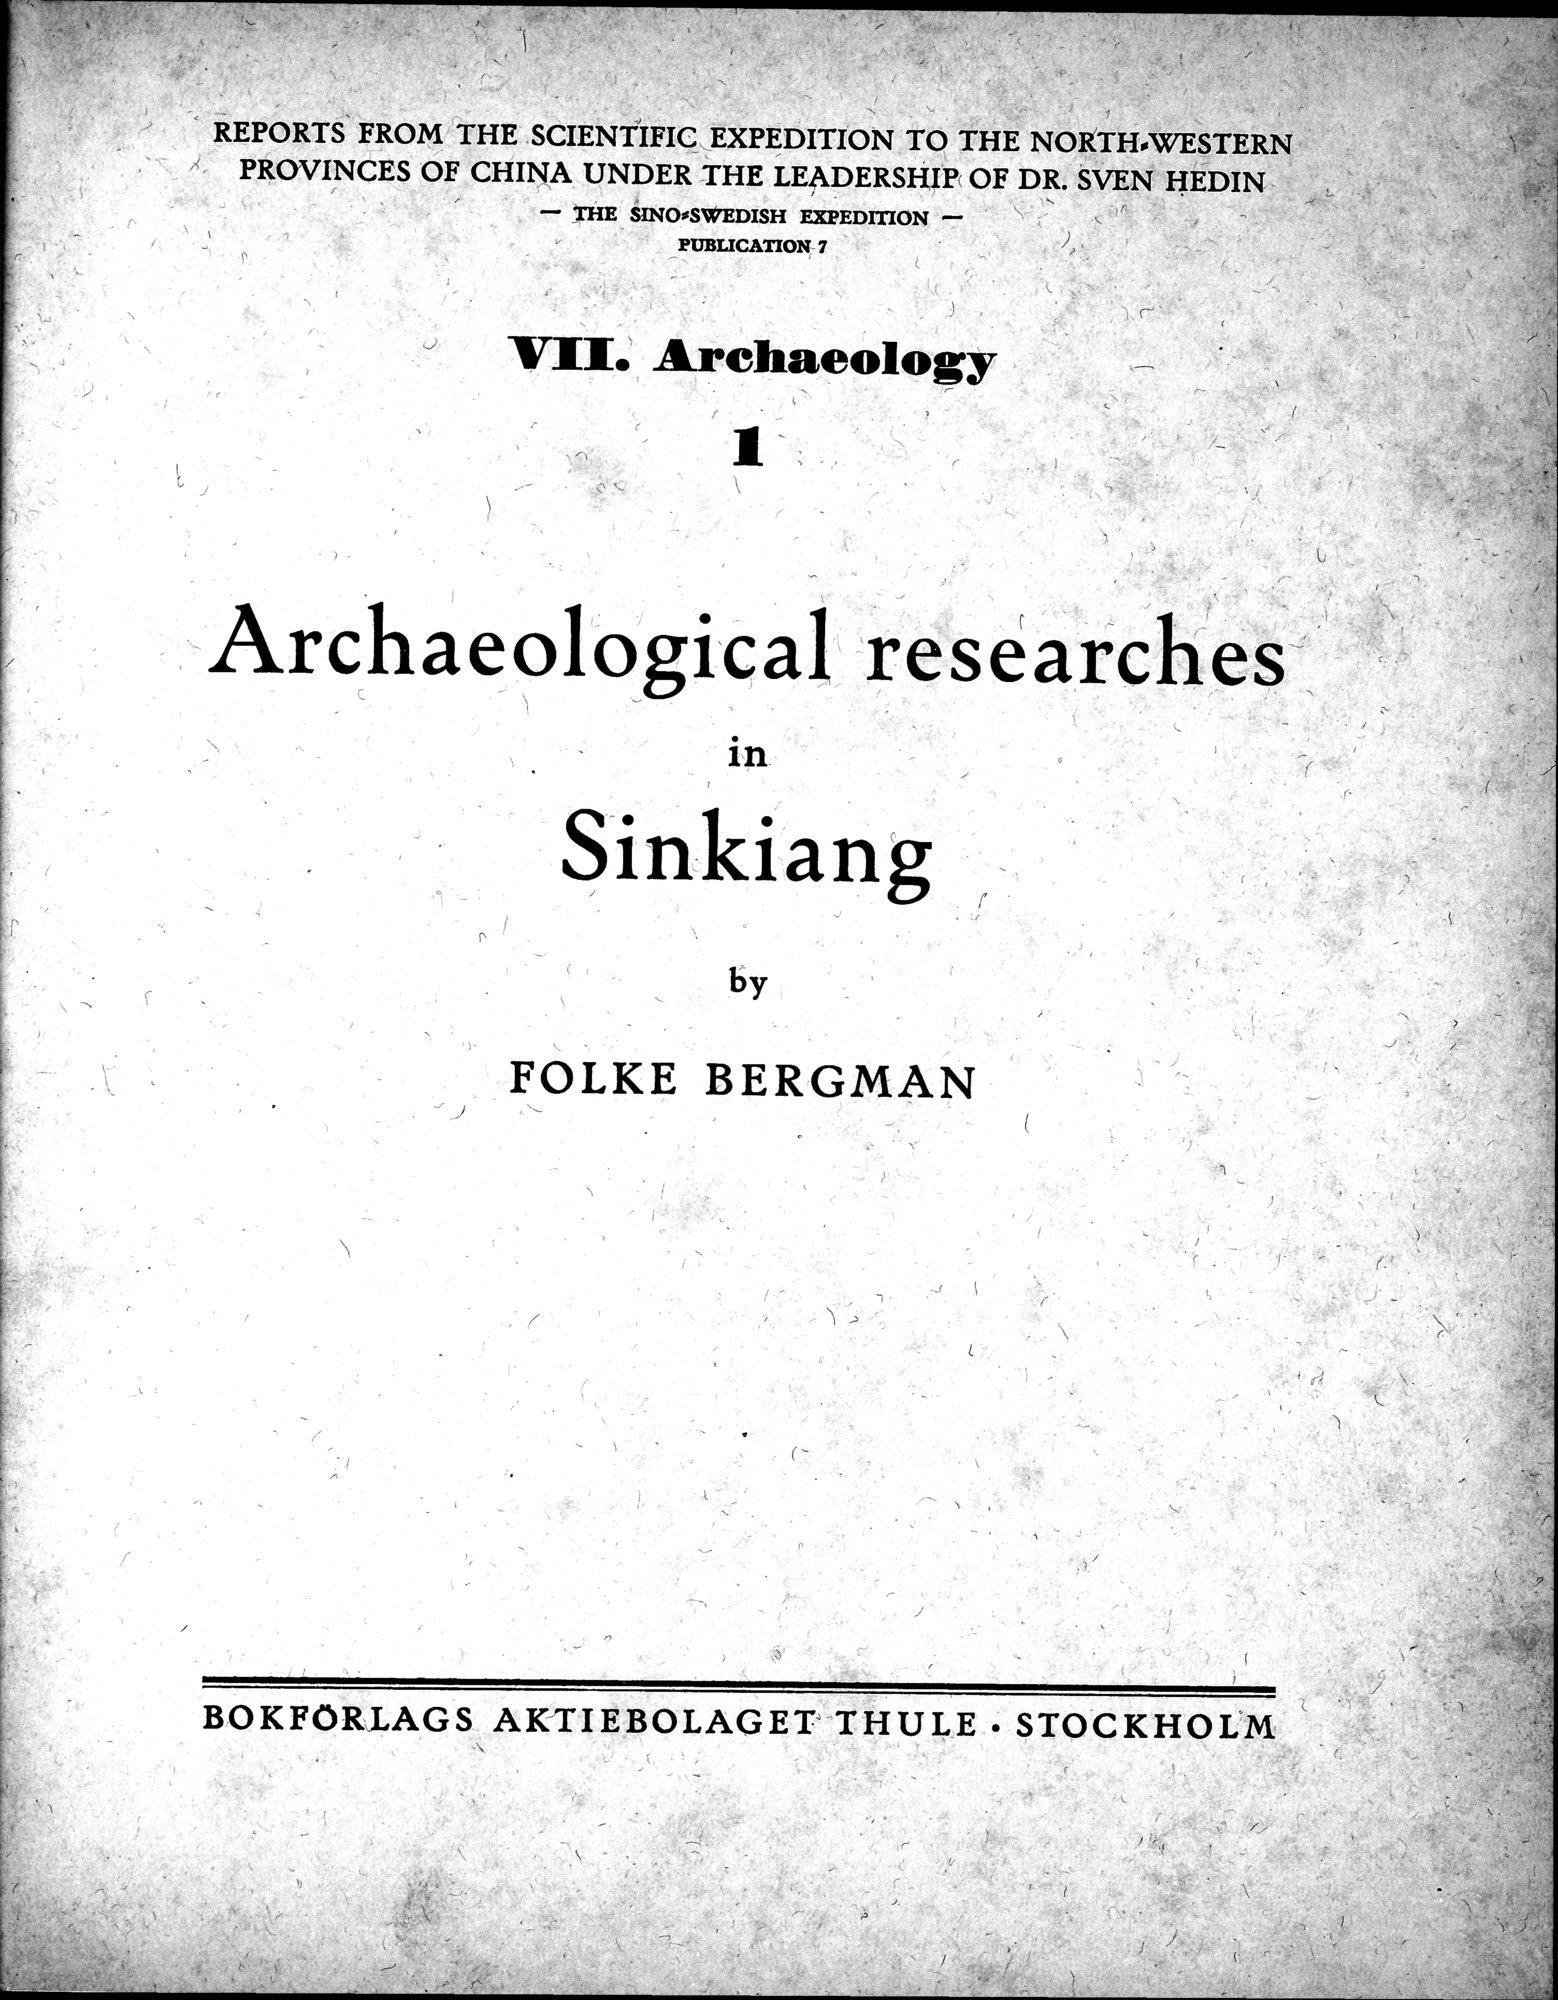 Archaeological Researches in Sinkiang : vol.1 / Page 5 (Grayscale High Resolution Image)